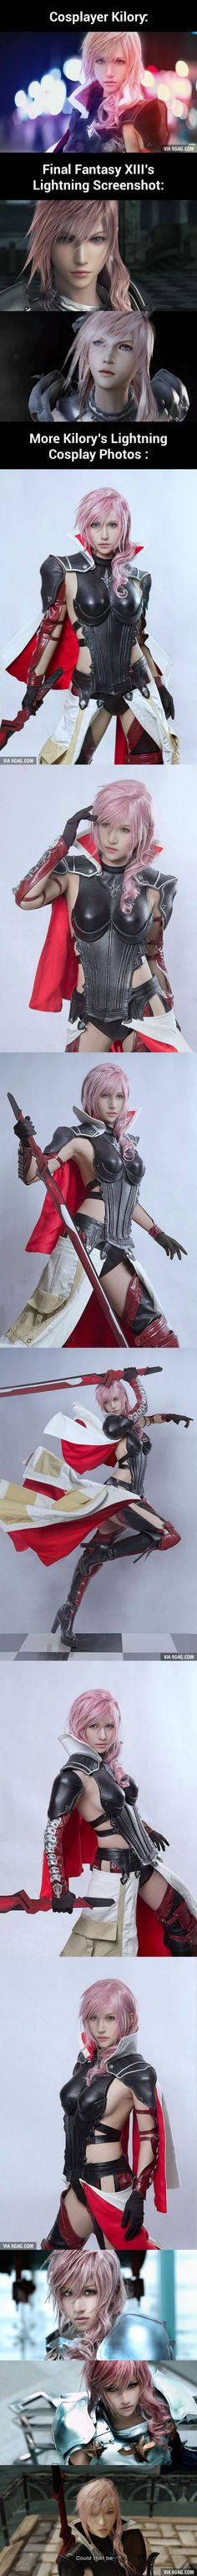 Lightning Is Real! This Final Fantasy Cosplay Looks Like A Screenshot!